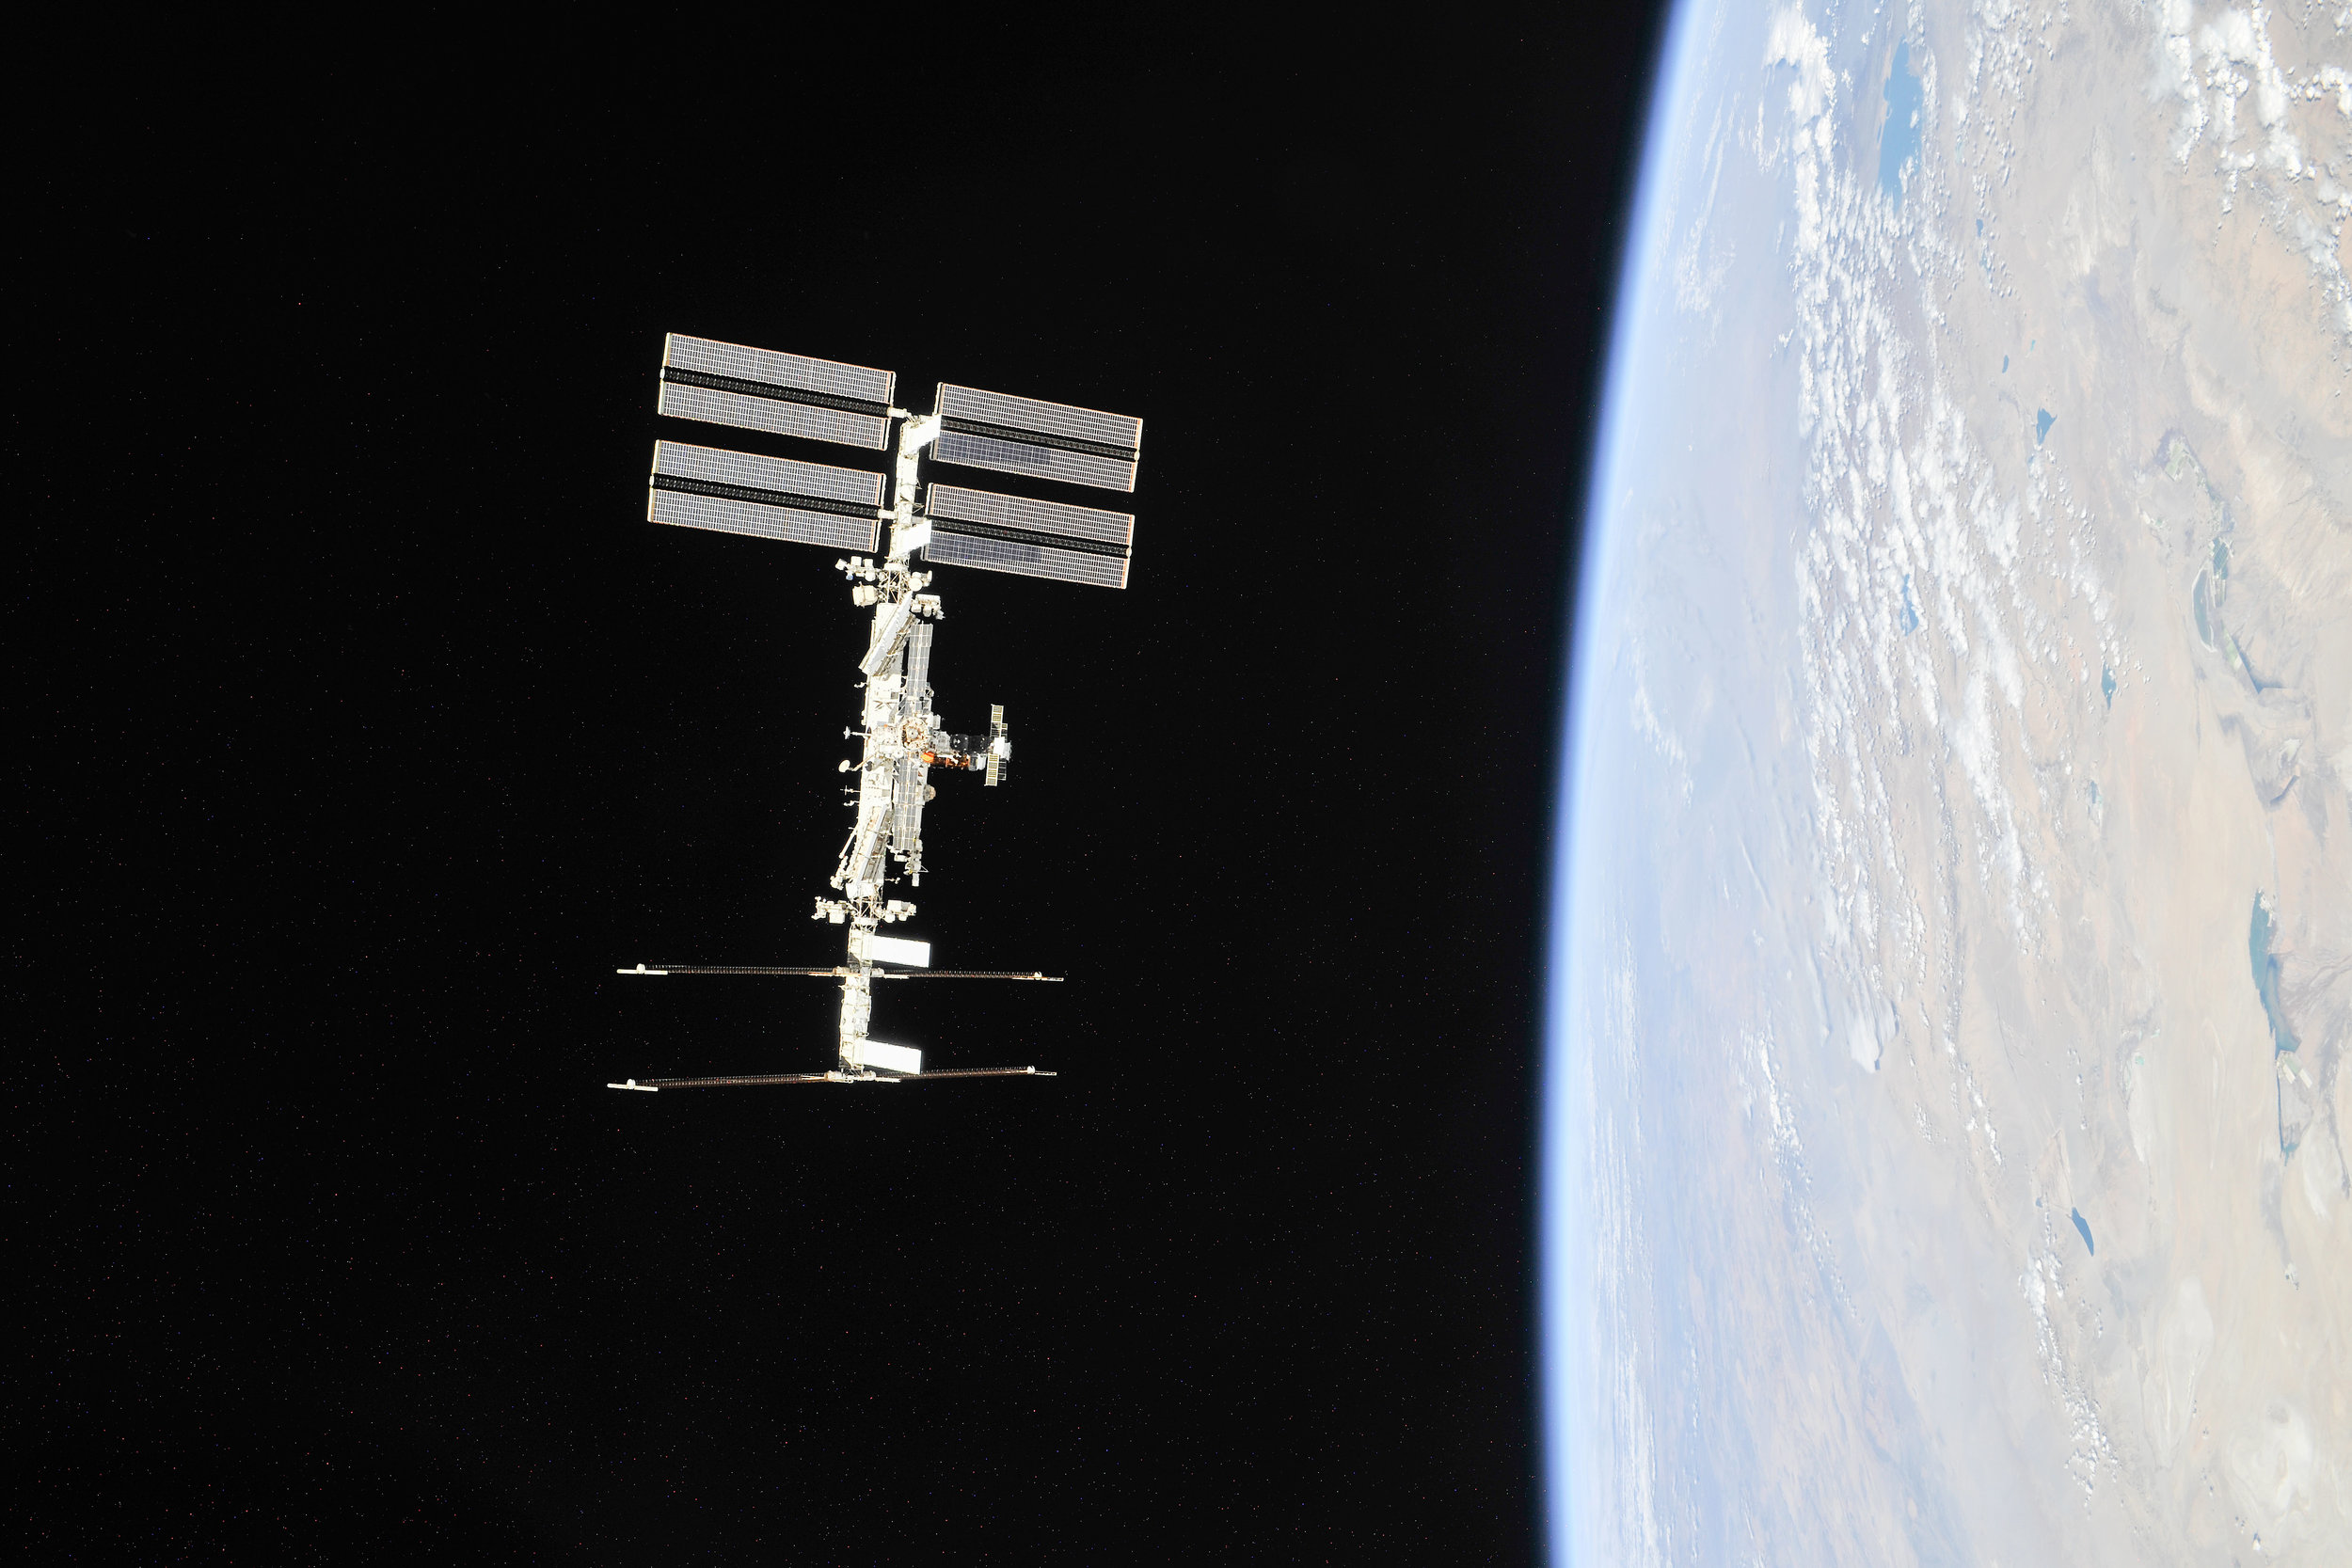 the-international-space-station-as-of-oct-4-2018_44911461494_o.jpg